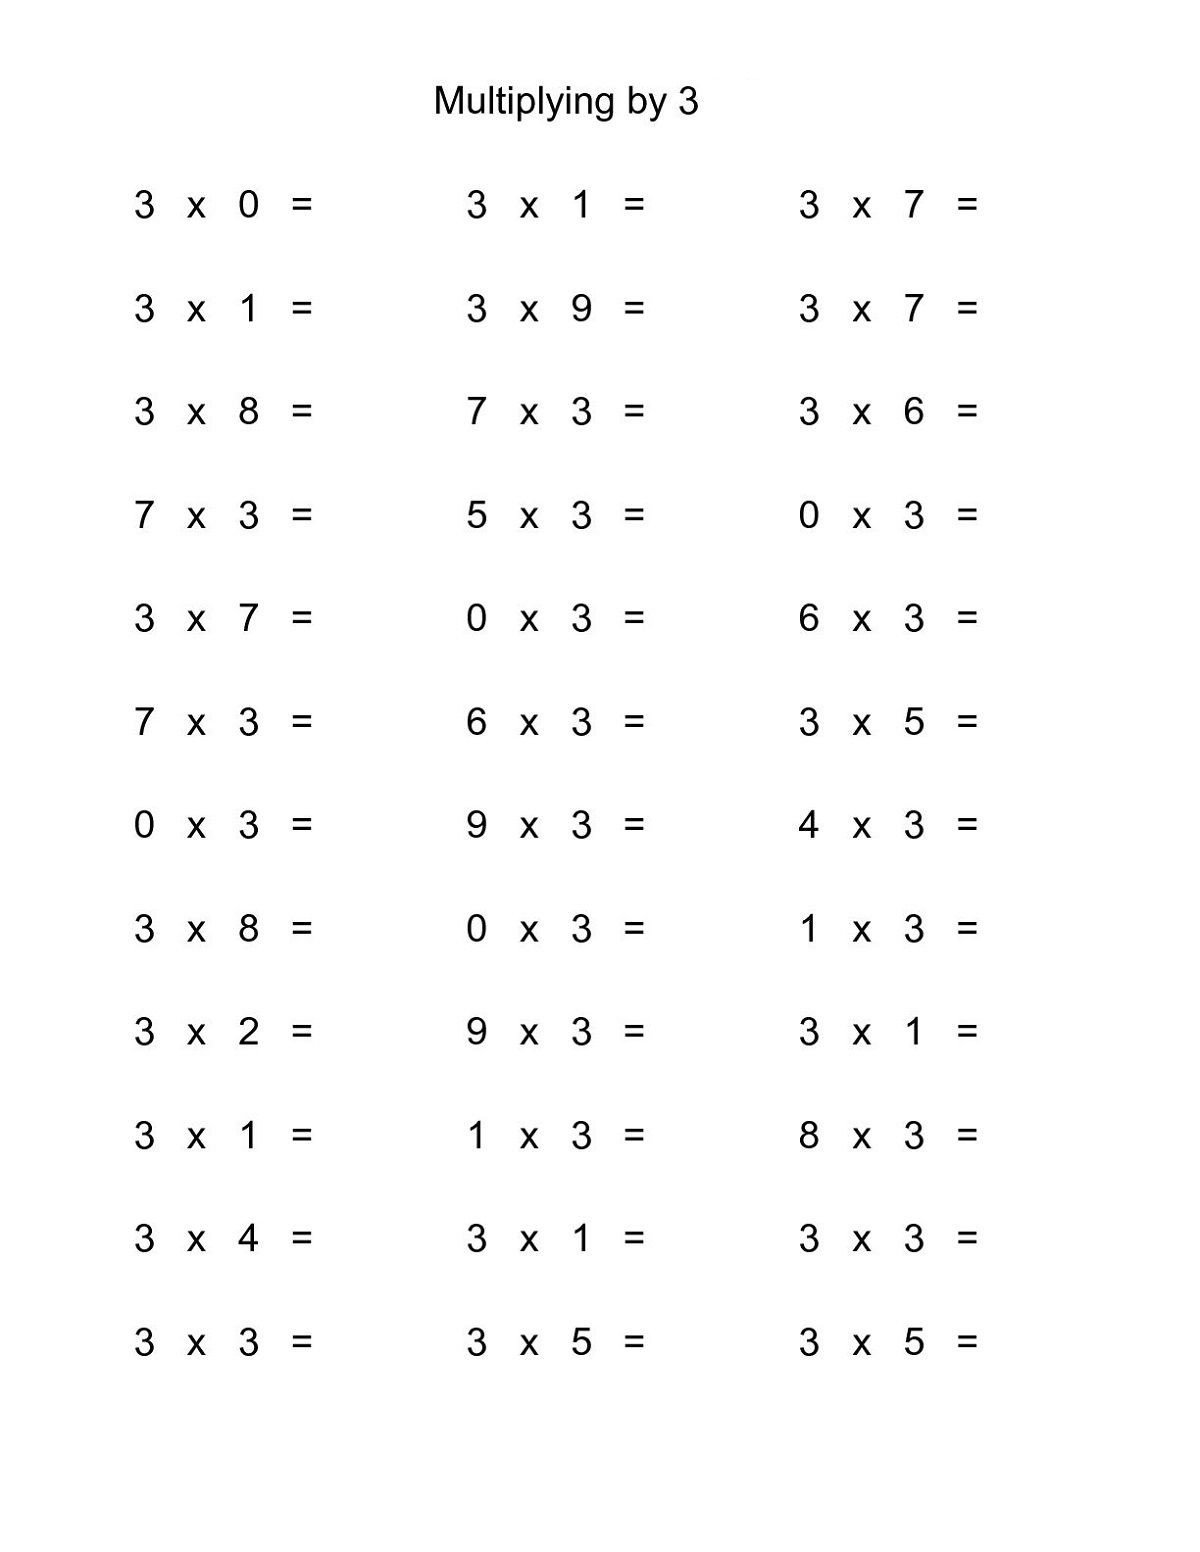 Multiplication Facts Worksheet Generator Times Table Math Worksheets Printable